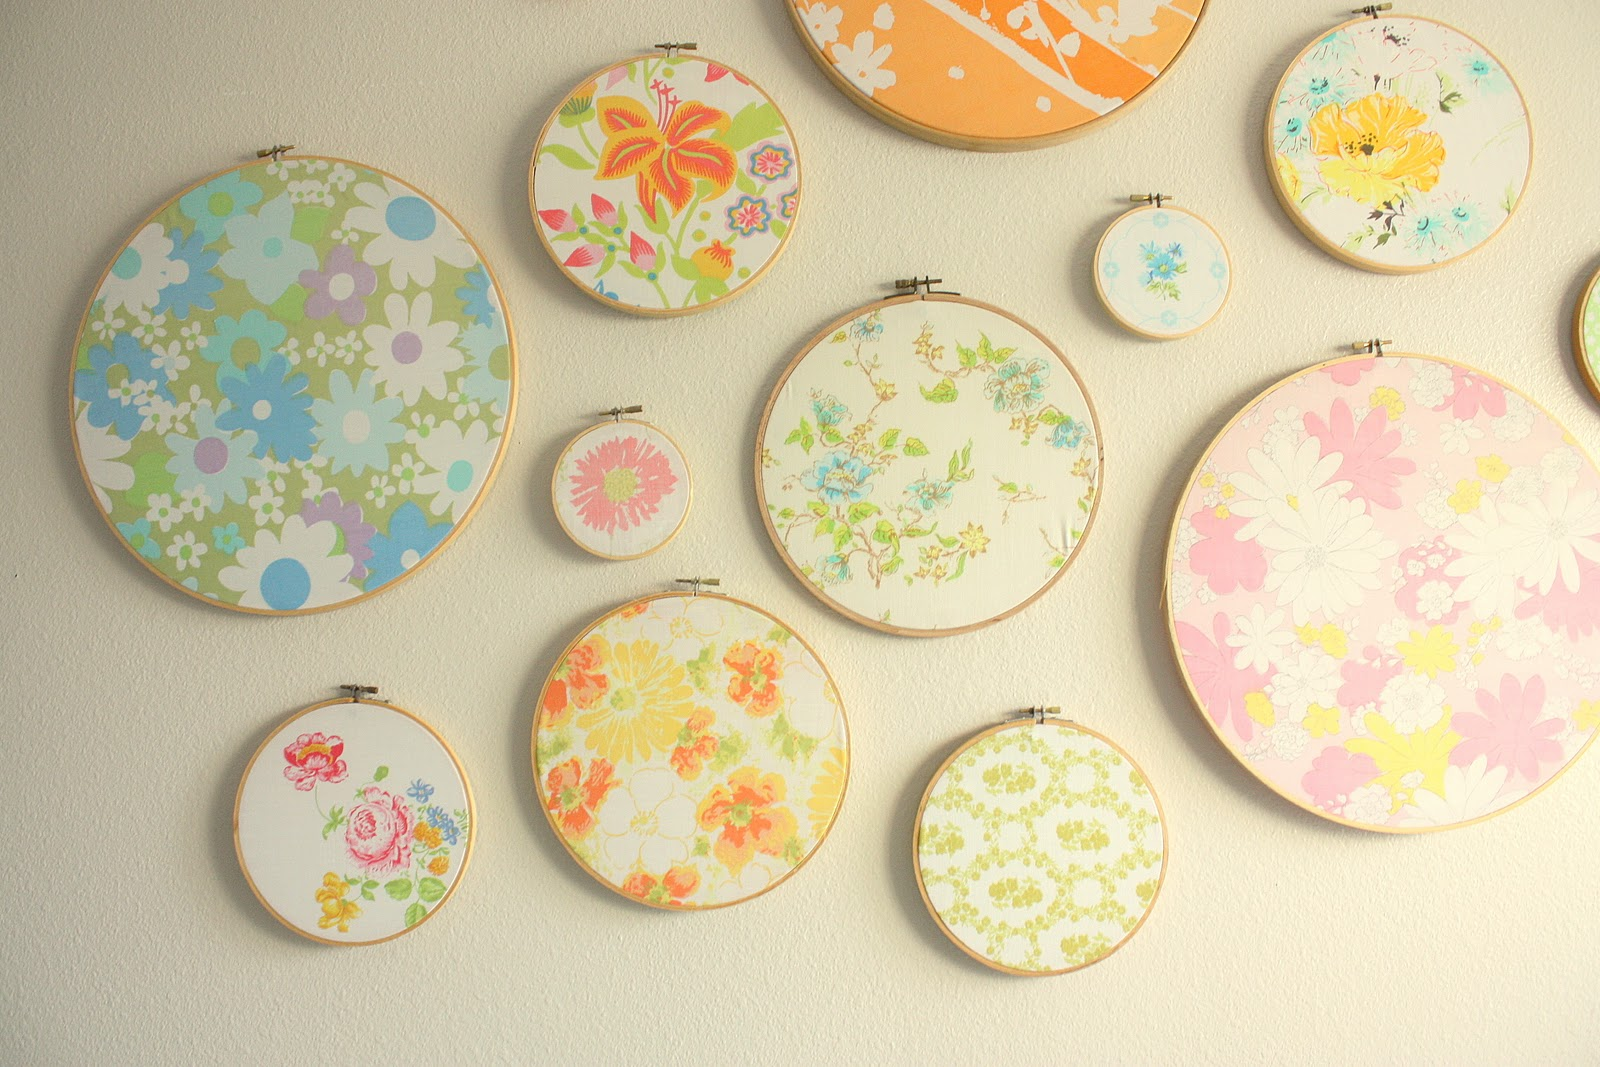 Fancy Embroidery Hoop Wall Art Ideas - Wall Art Collections ...